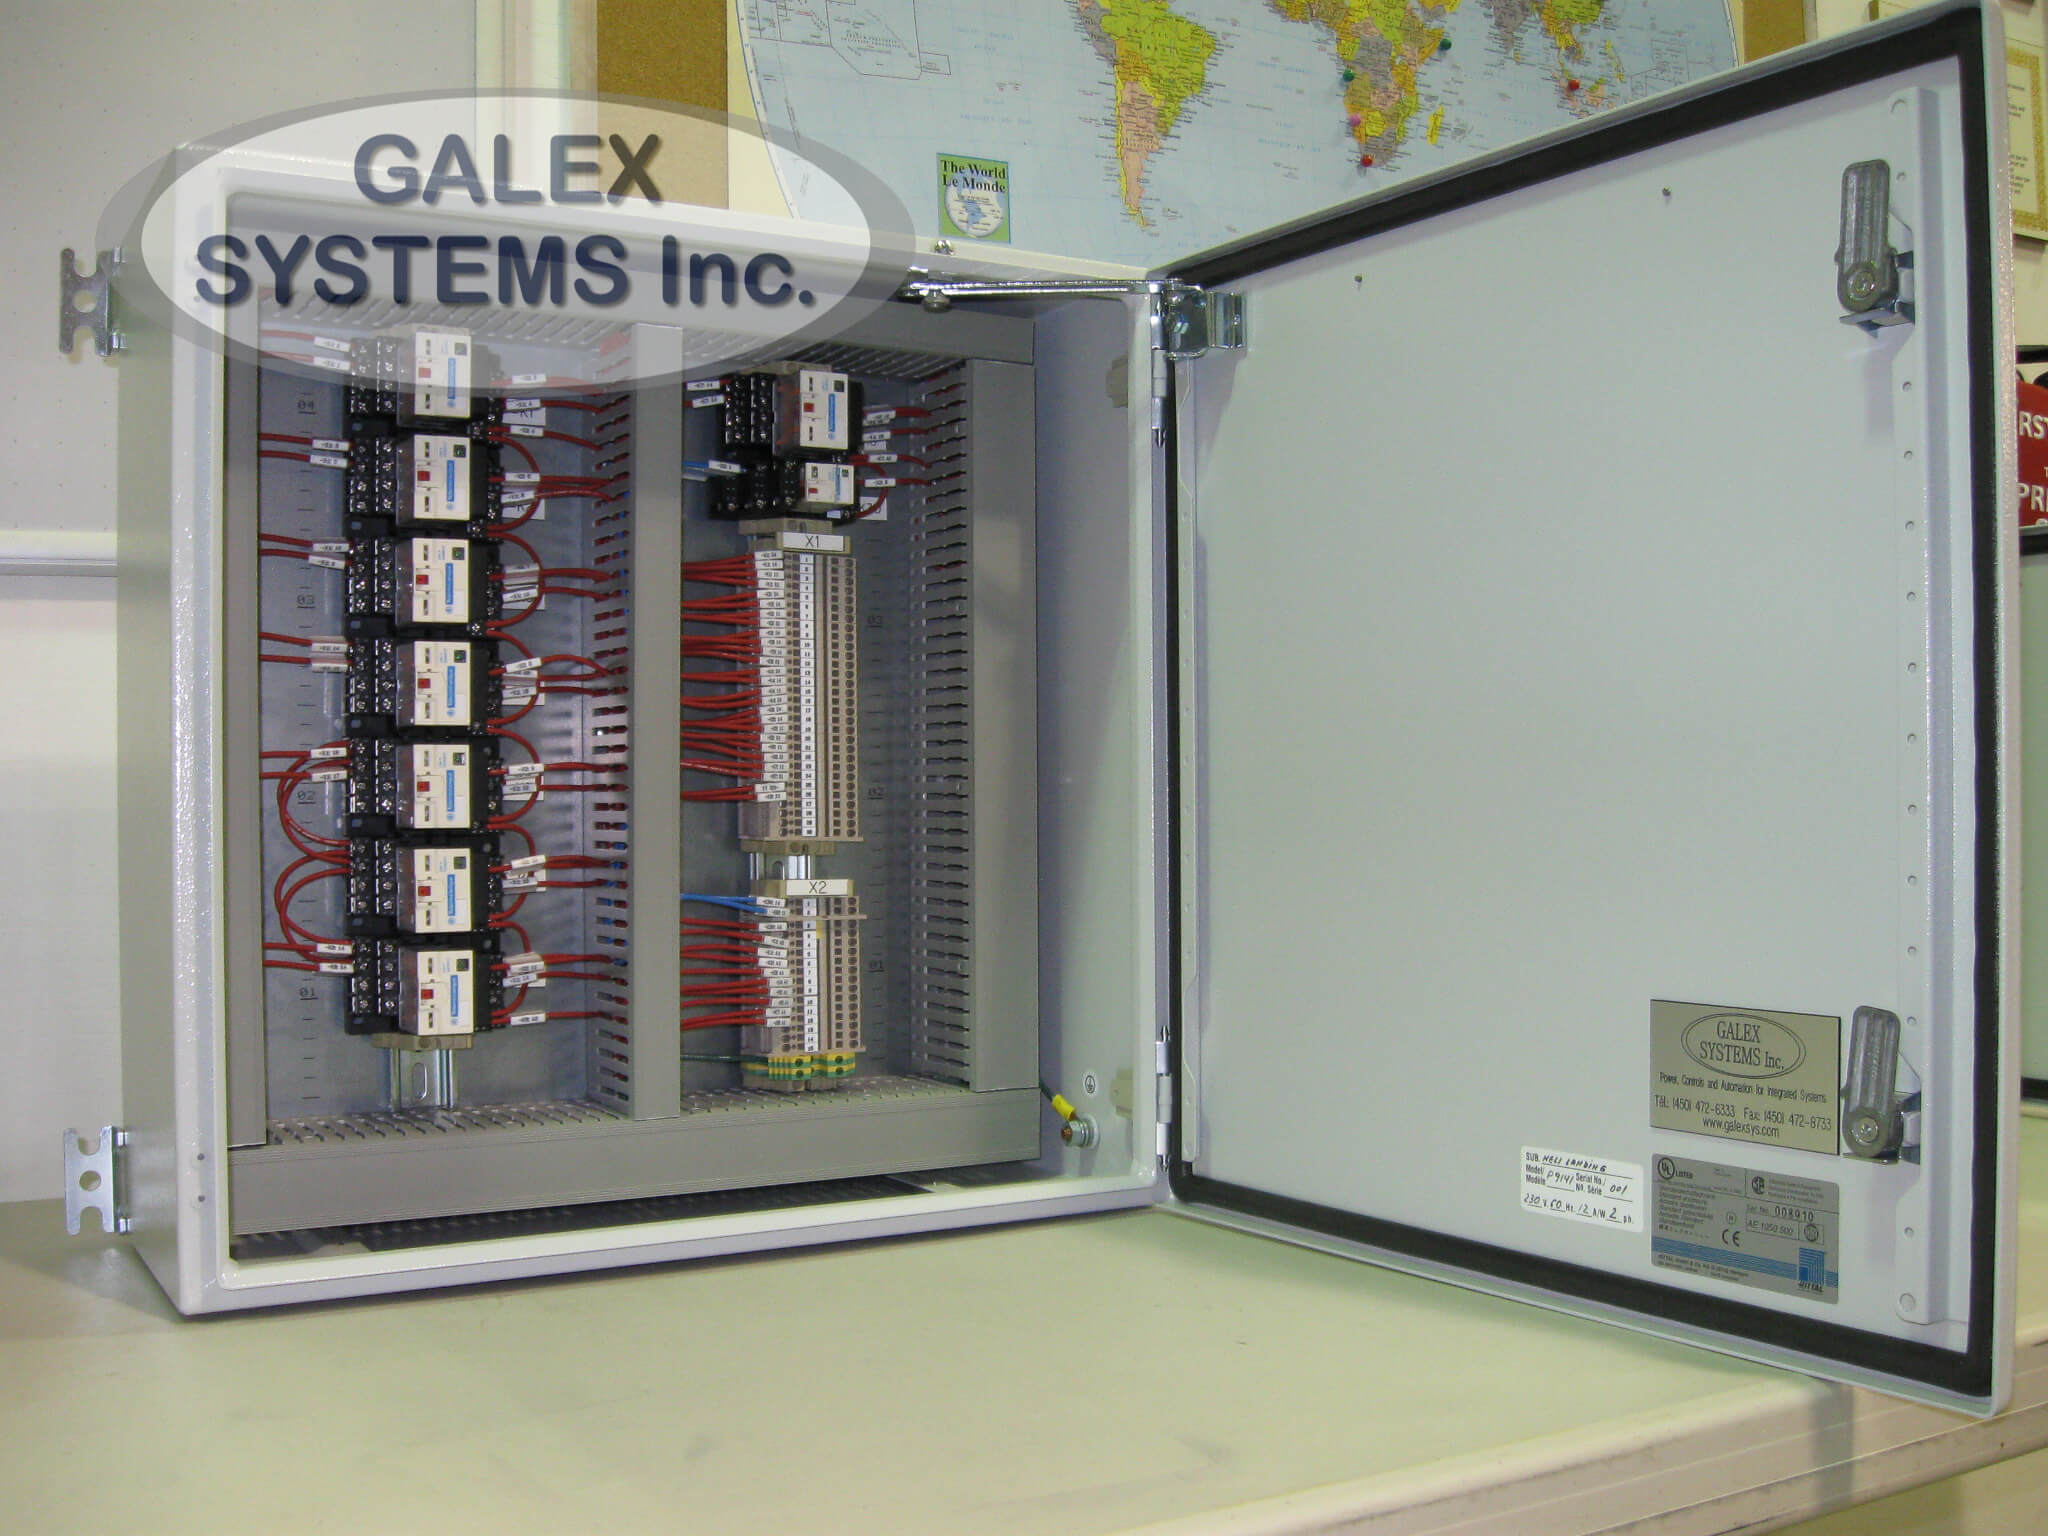 49 - Helideck Lighting Control Box - Galex Systems Inc.